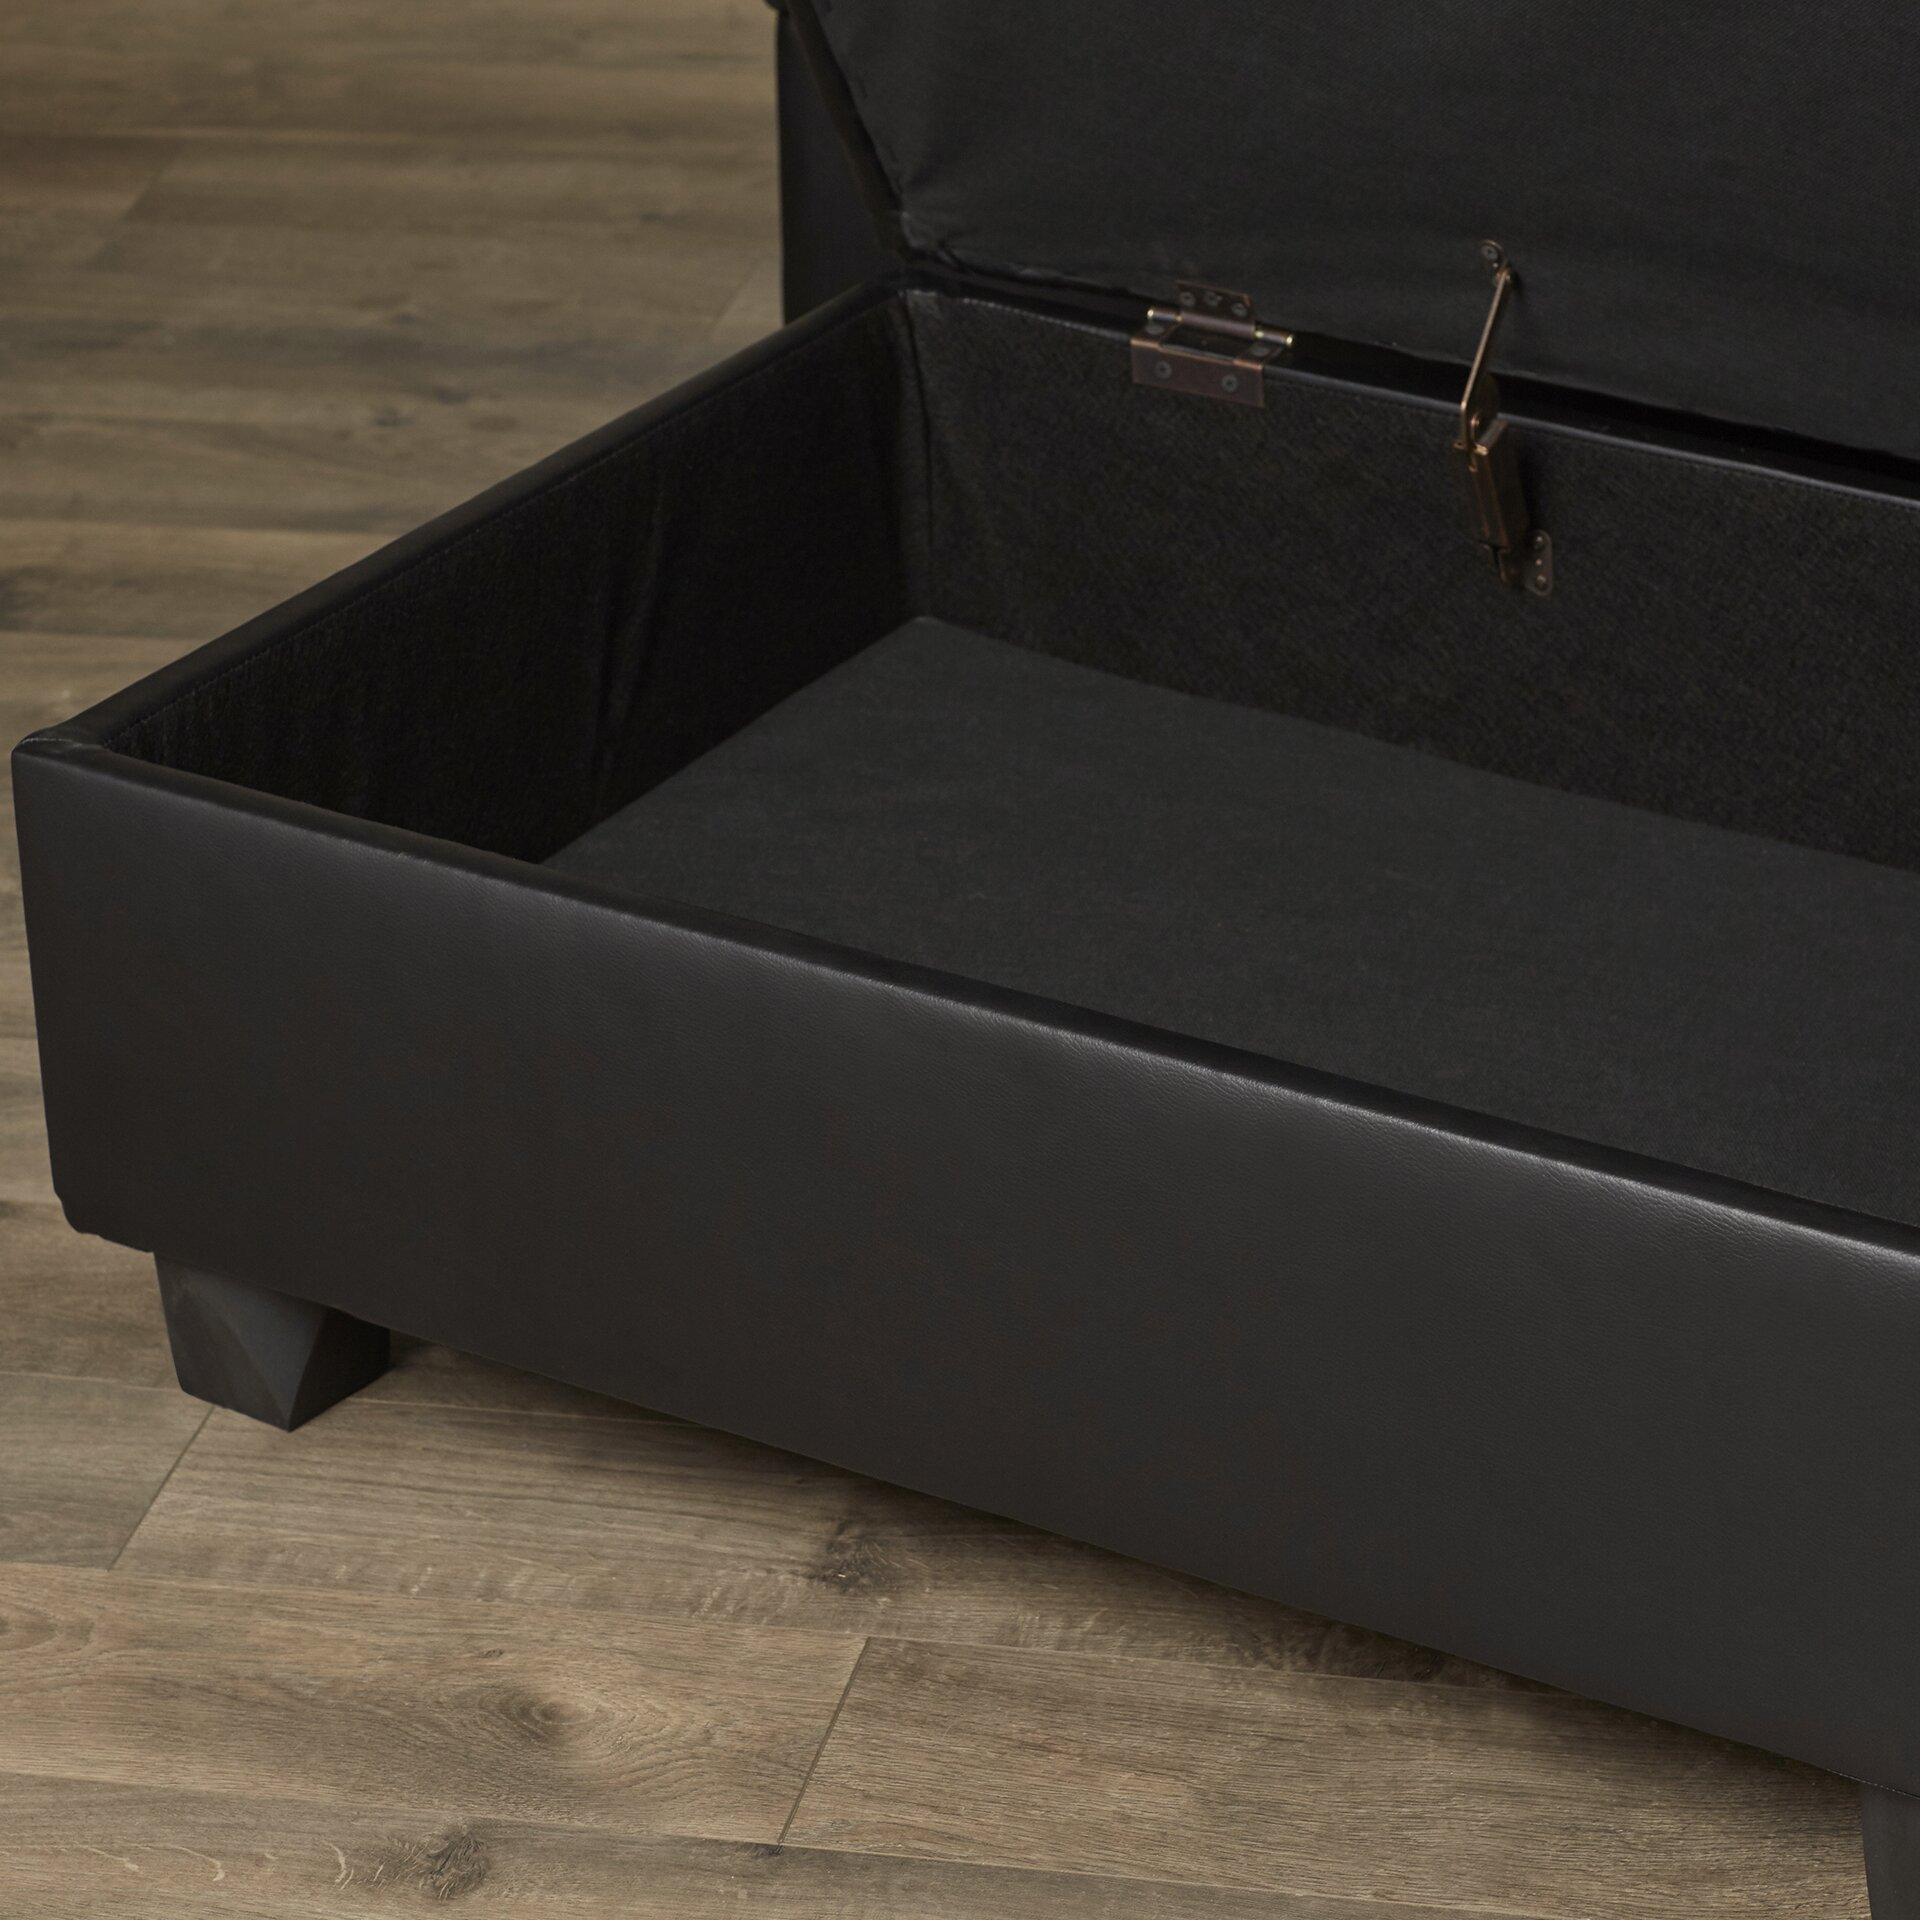 Bonded Leather Sofa Reviews - Durablend Leather Sofa Top